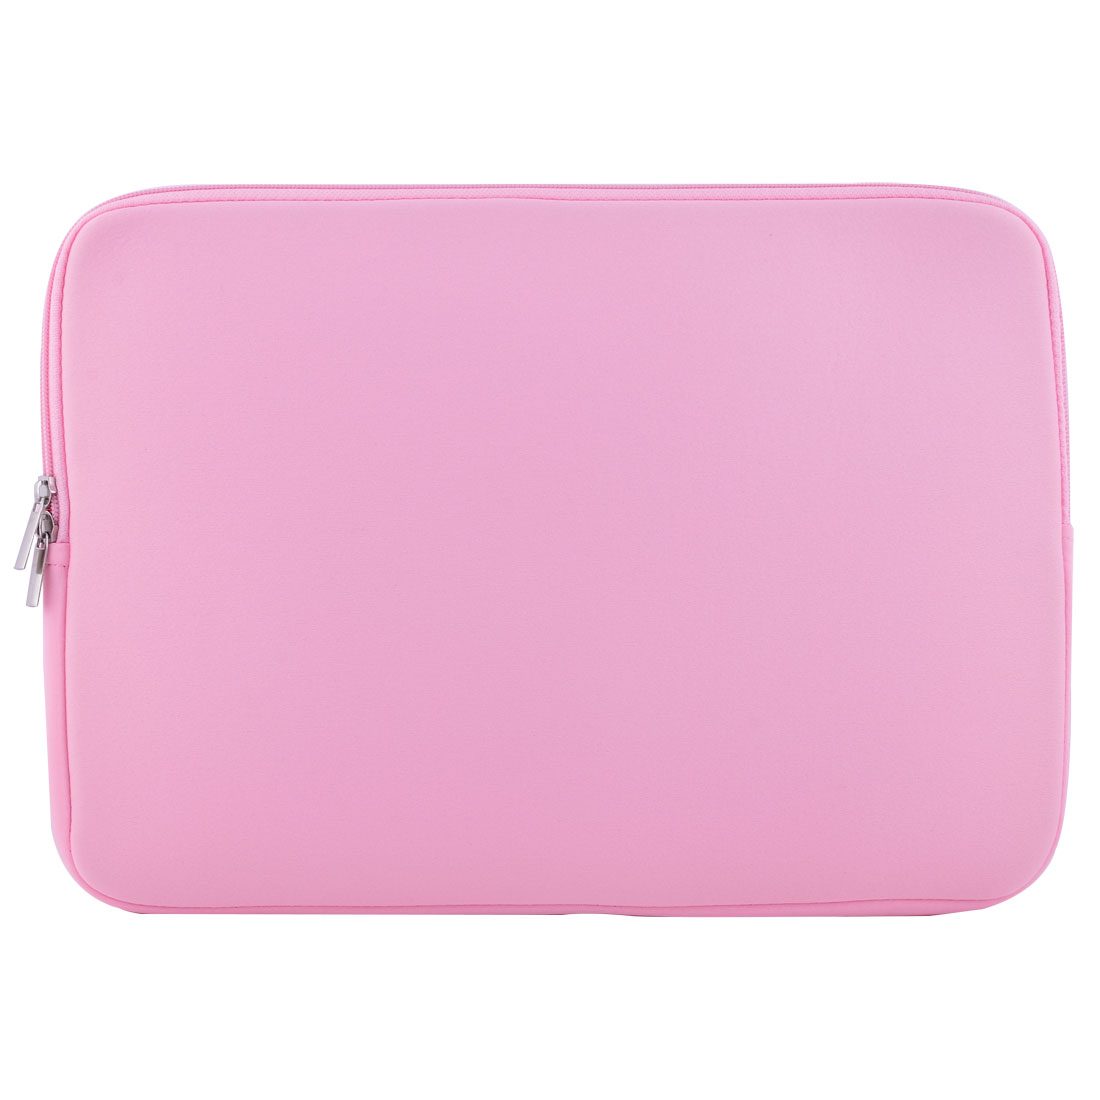 Notebook Neoprene Dual Zipper Carry Pouch Laptop Sleeve Pink for Macbook 15.4 Inch